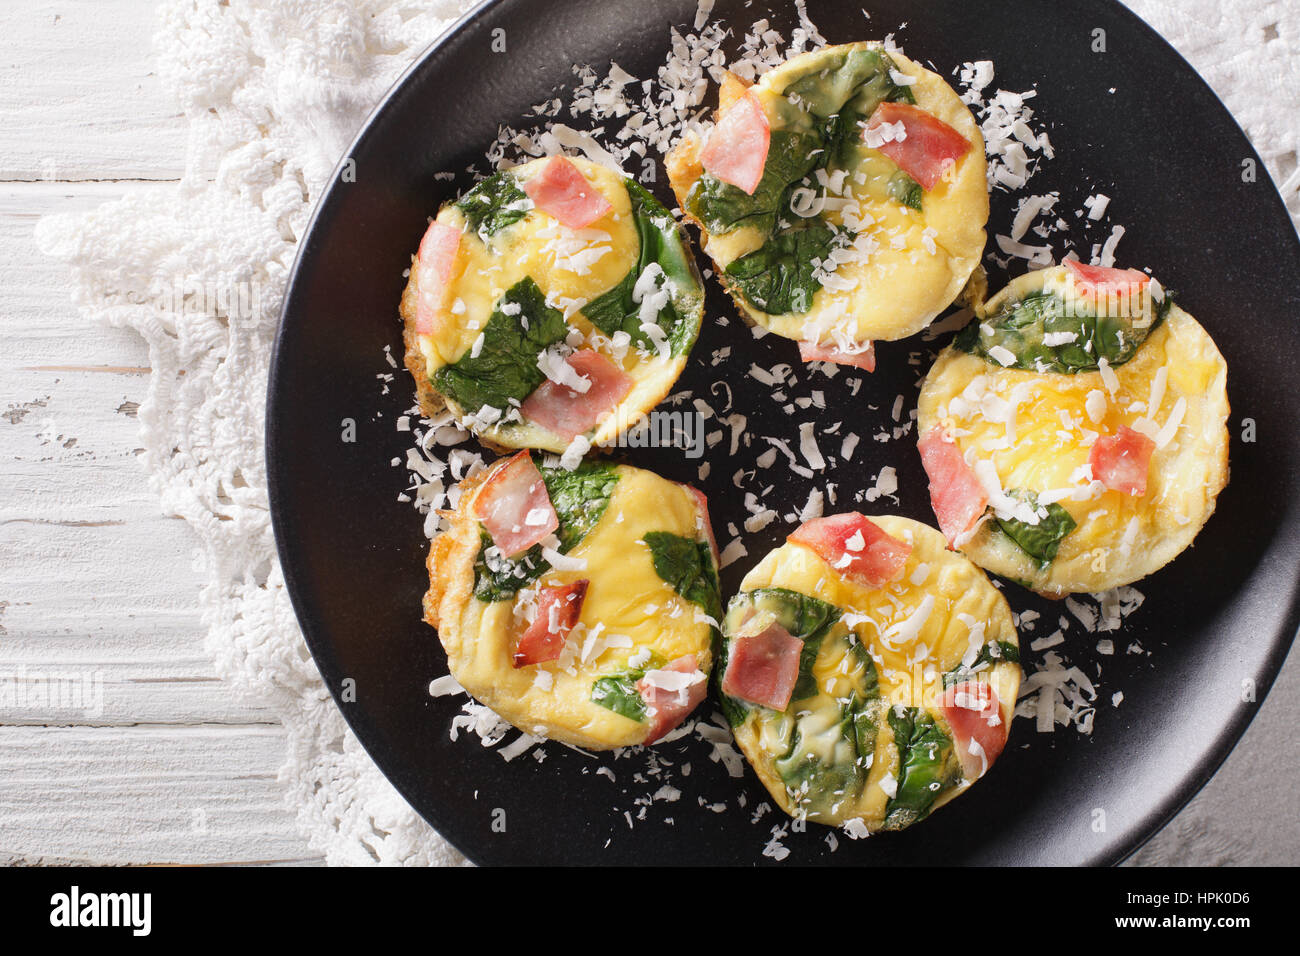 Omelet with spinach, ham and cheese on a plate close-up on the table. Horizontal view from above - Stock Image